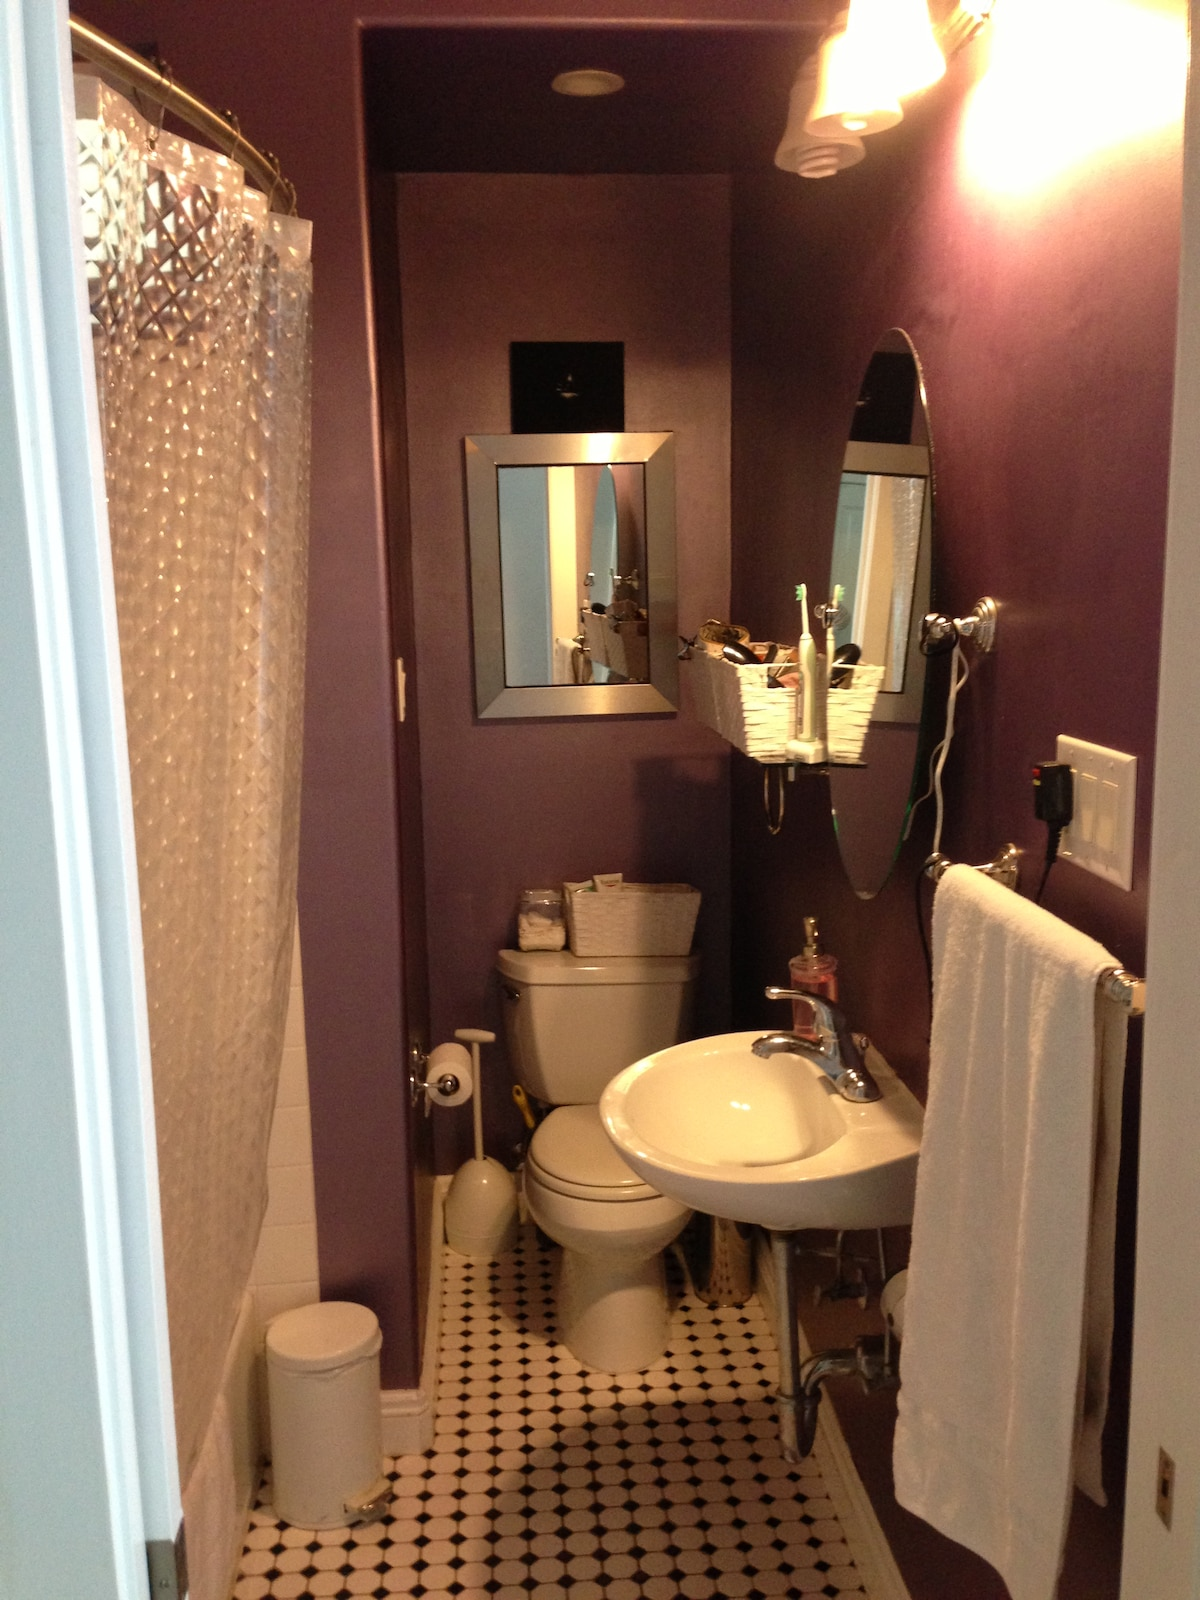 Clean modern bathroom with everything working 100%. large shower head with great water pressure and plenty of hot water.